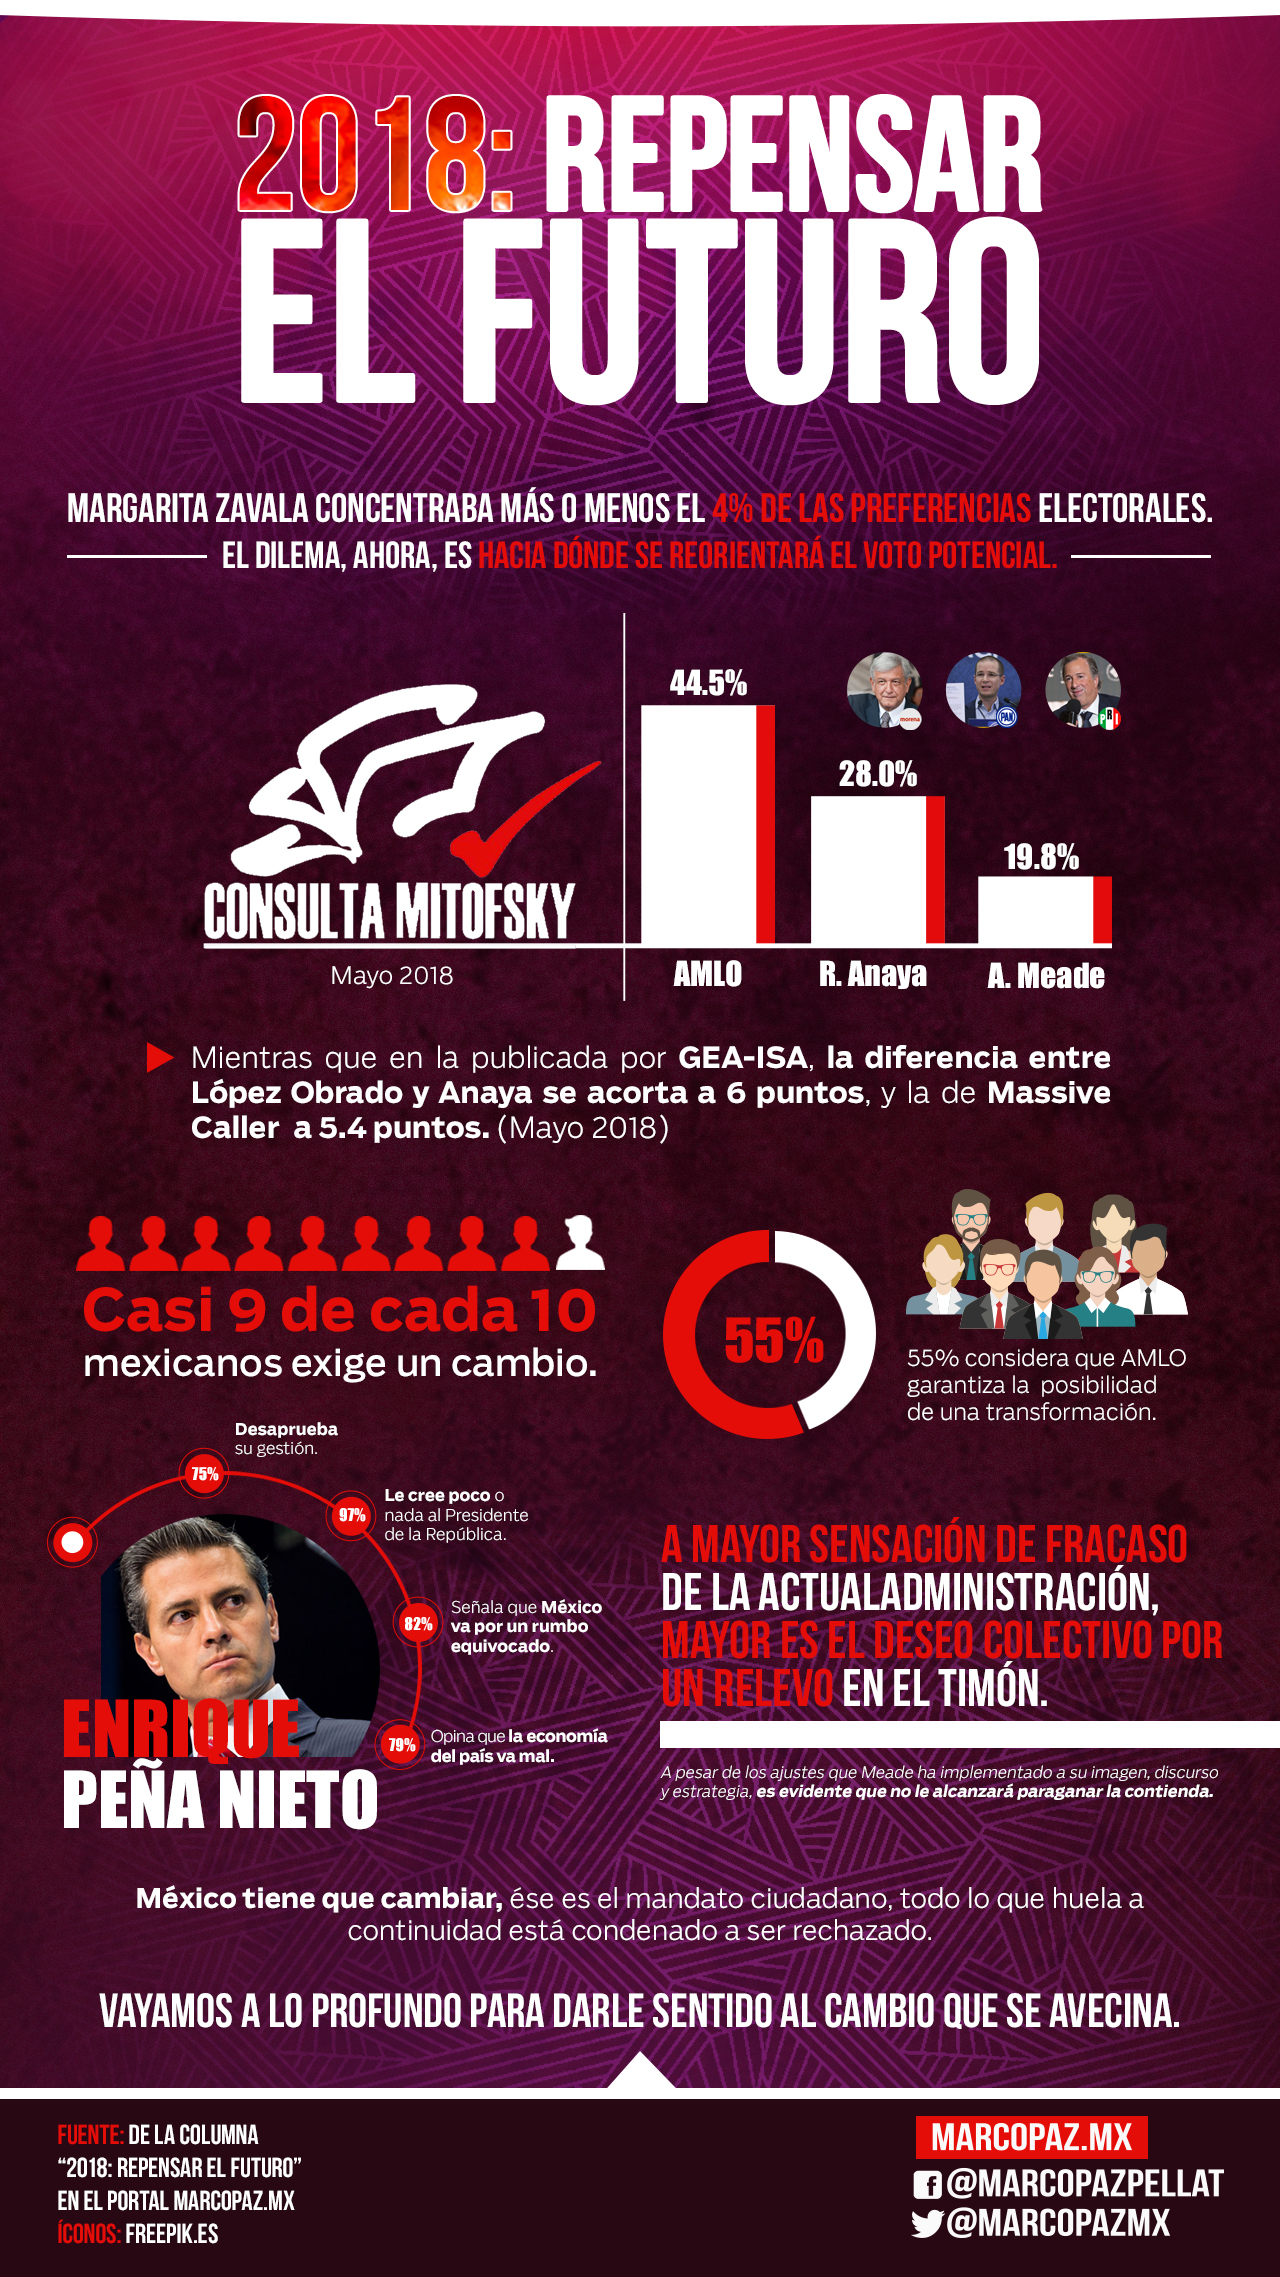 021_INFOGRAFIA_2018 repensar el futuro copy